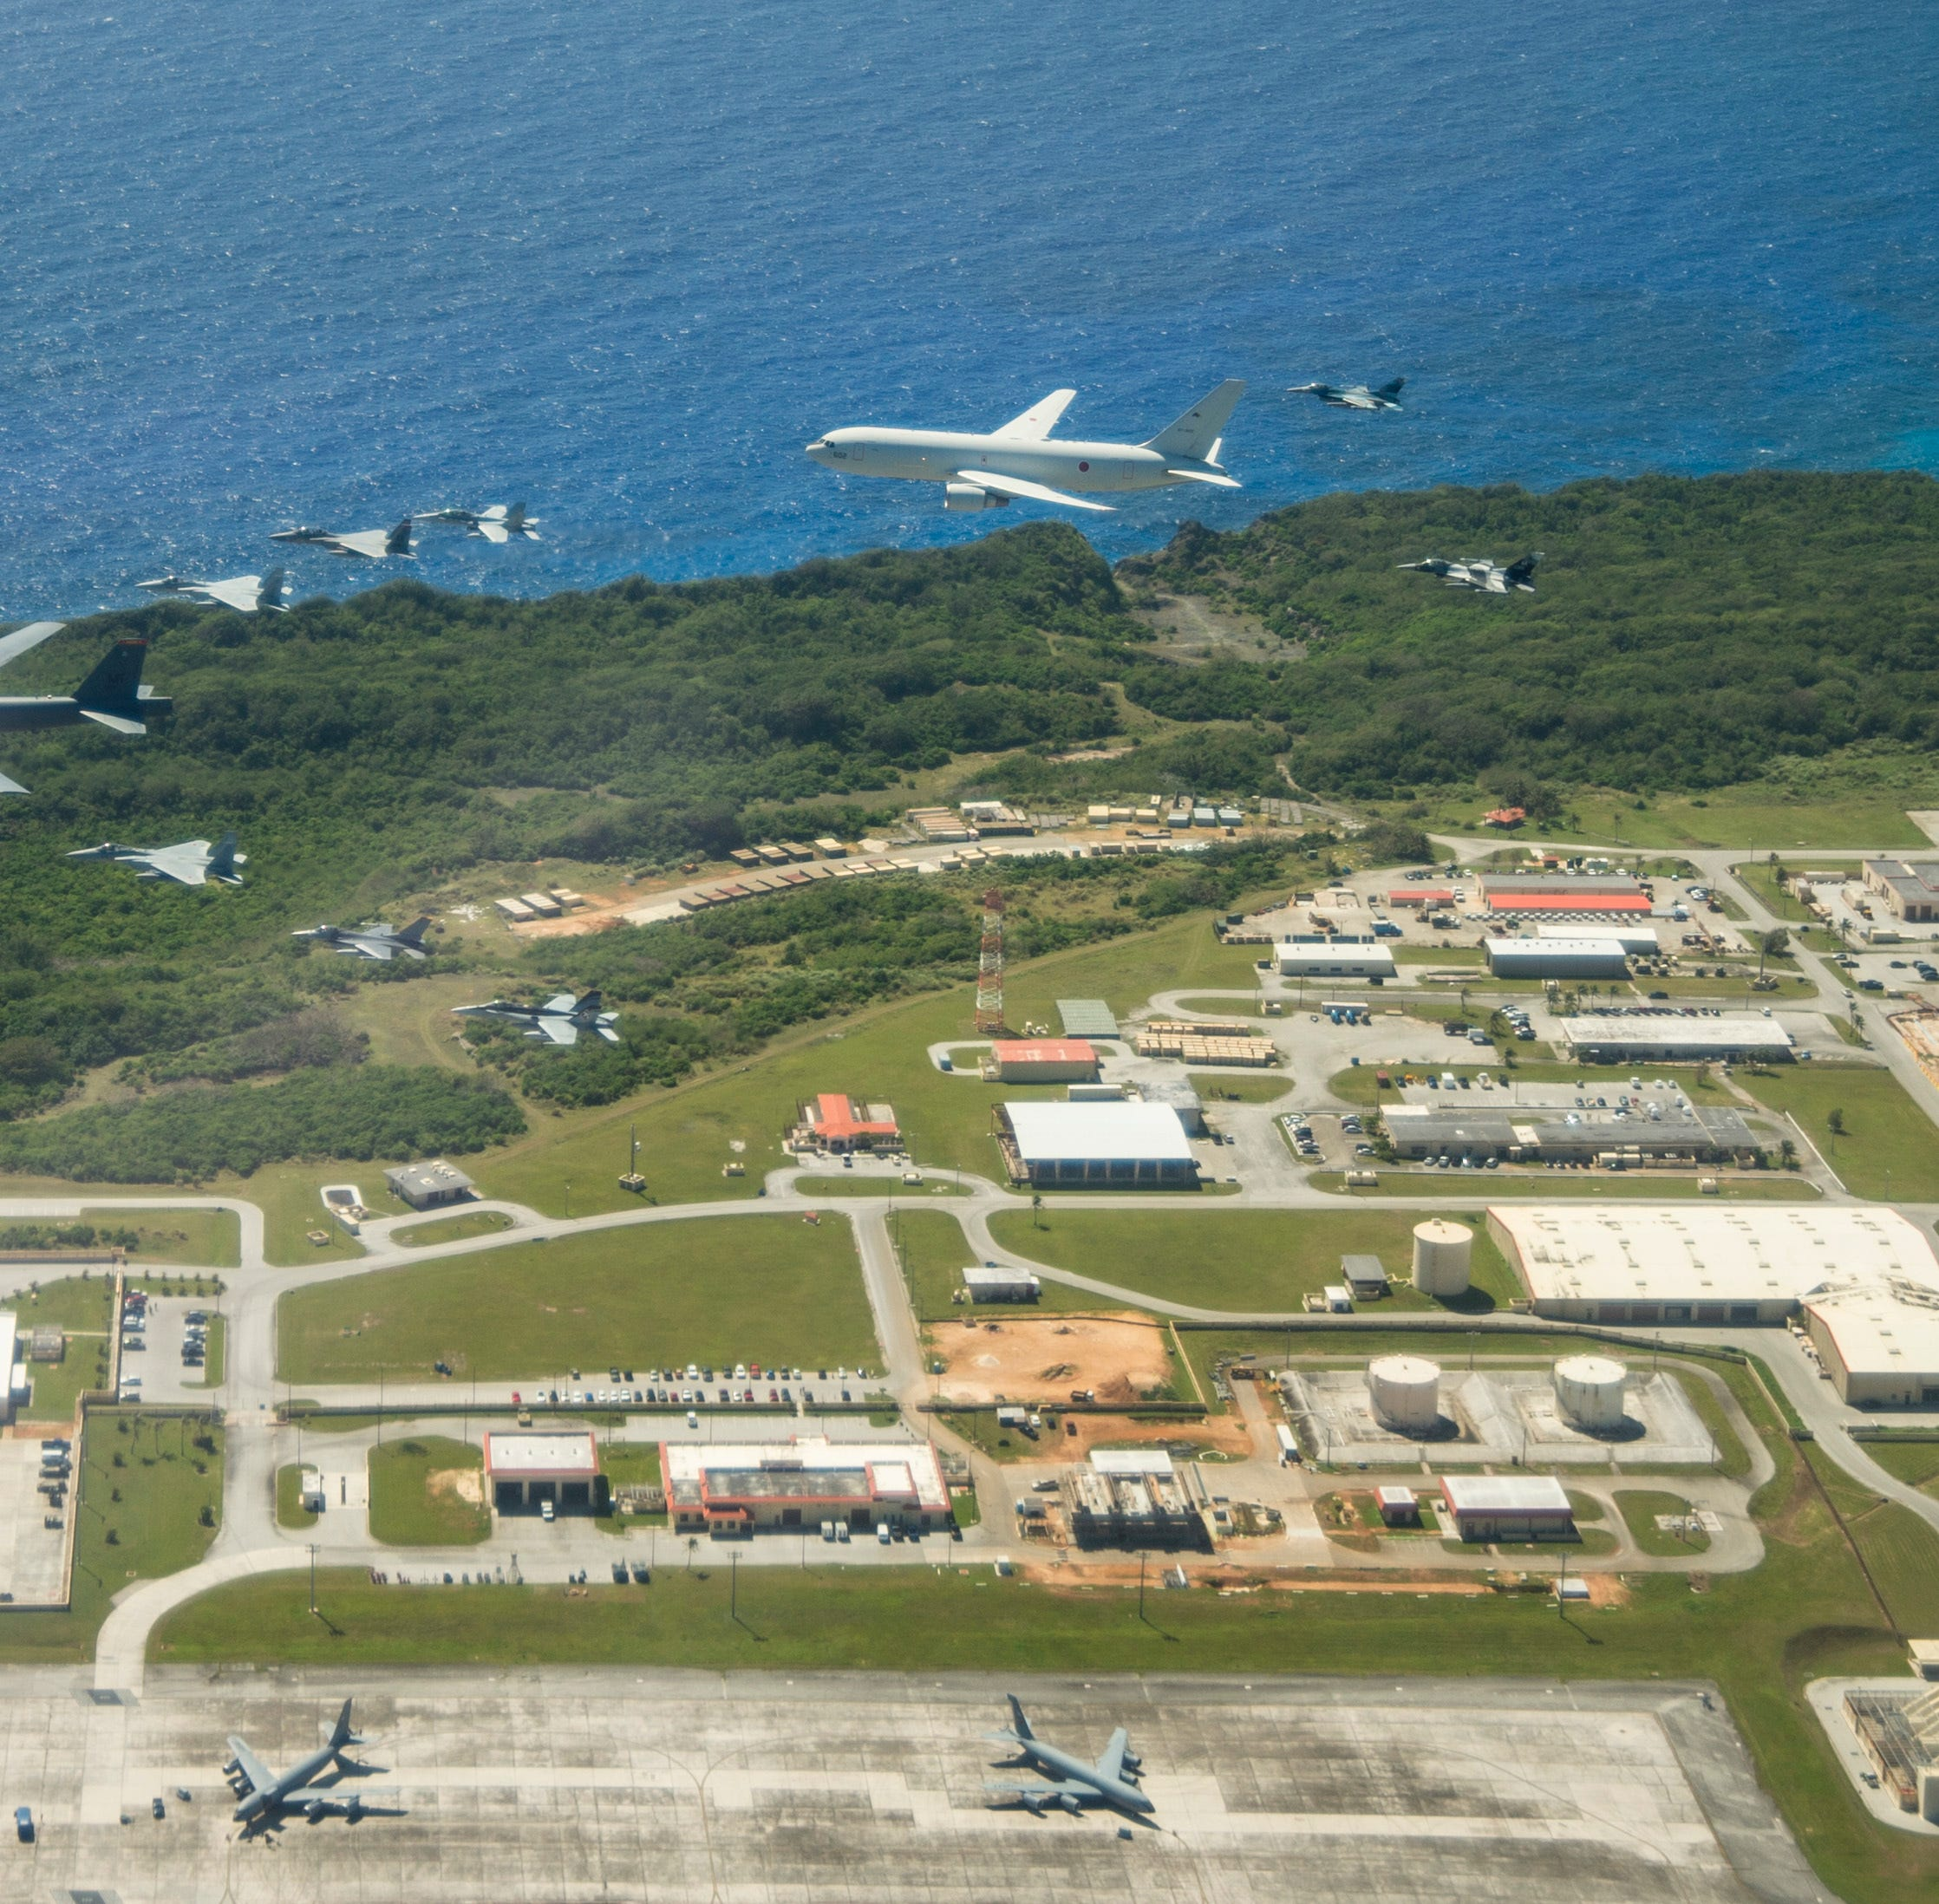 Barrigada-based Modern International Inc. awarded $18M military contract for Andersen work